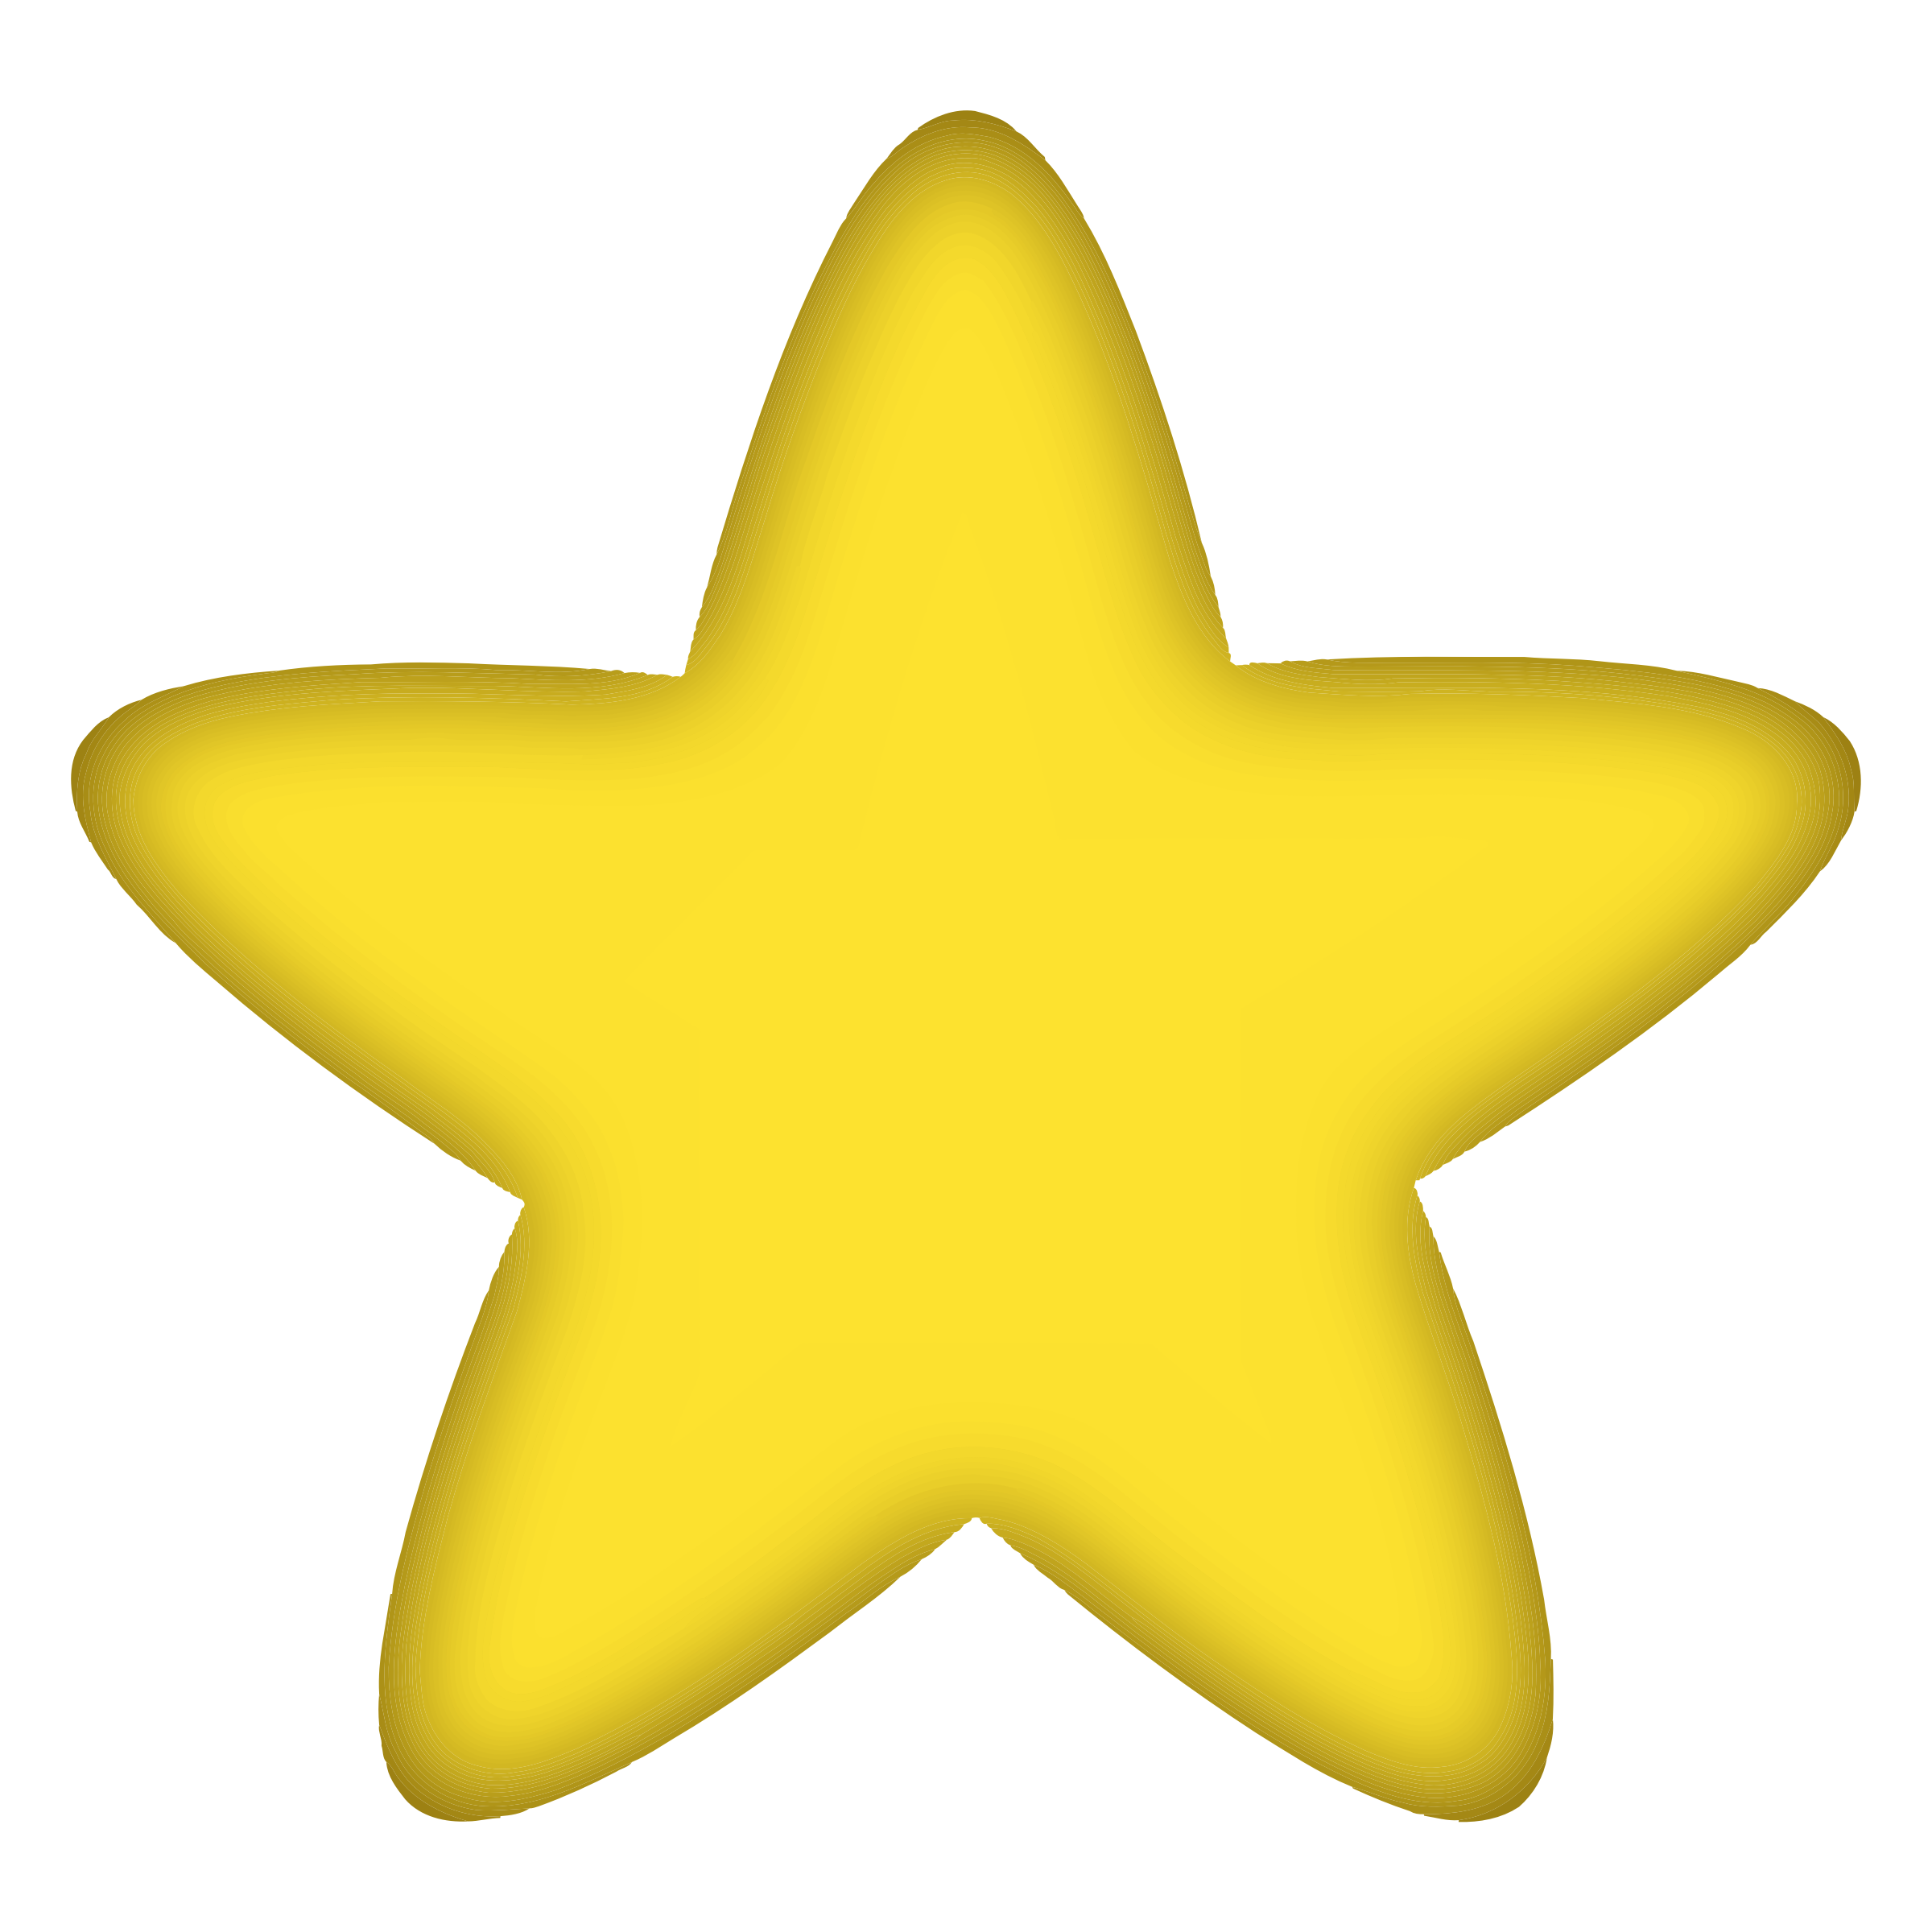 Puffy star clipart images.